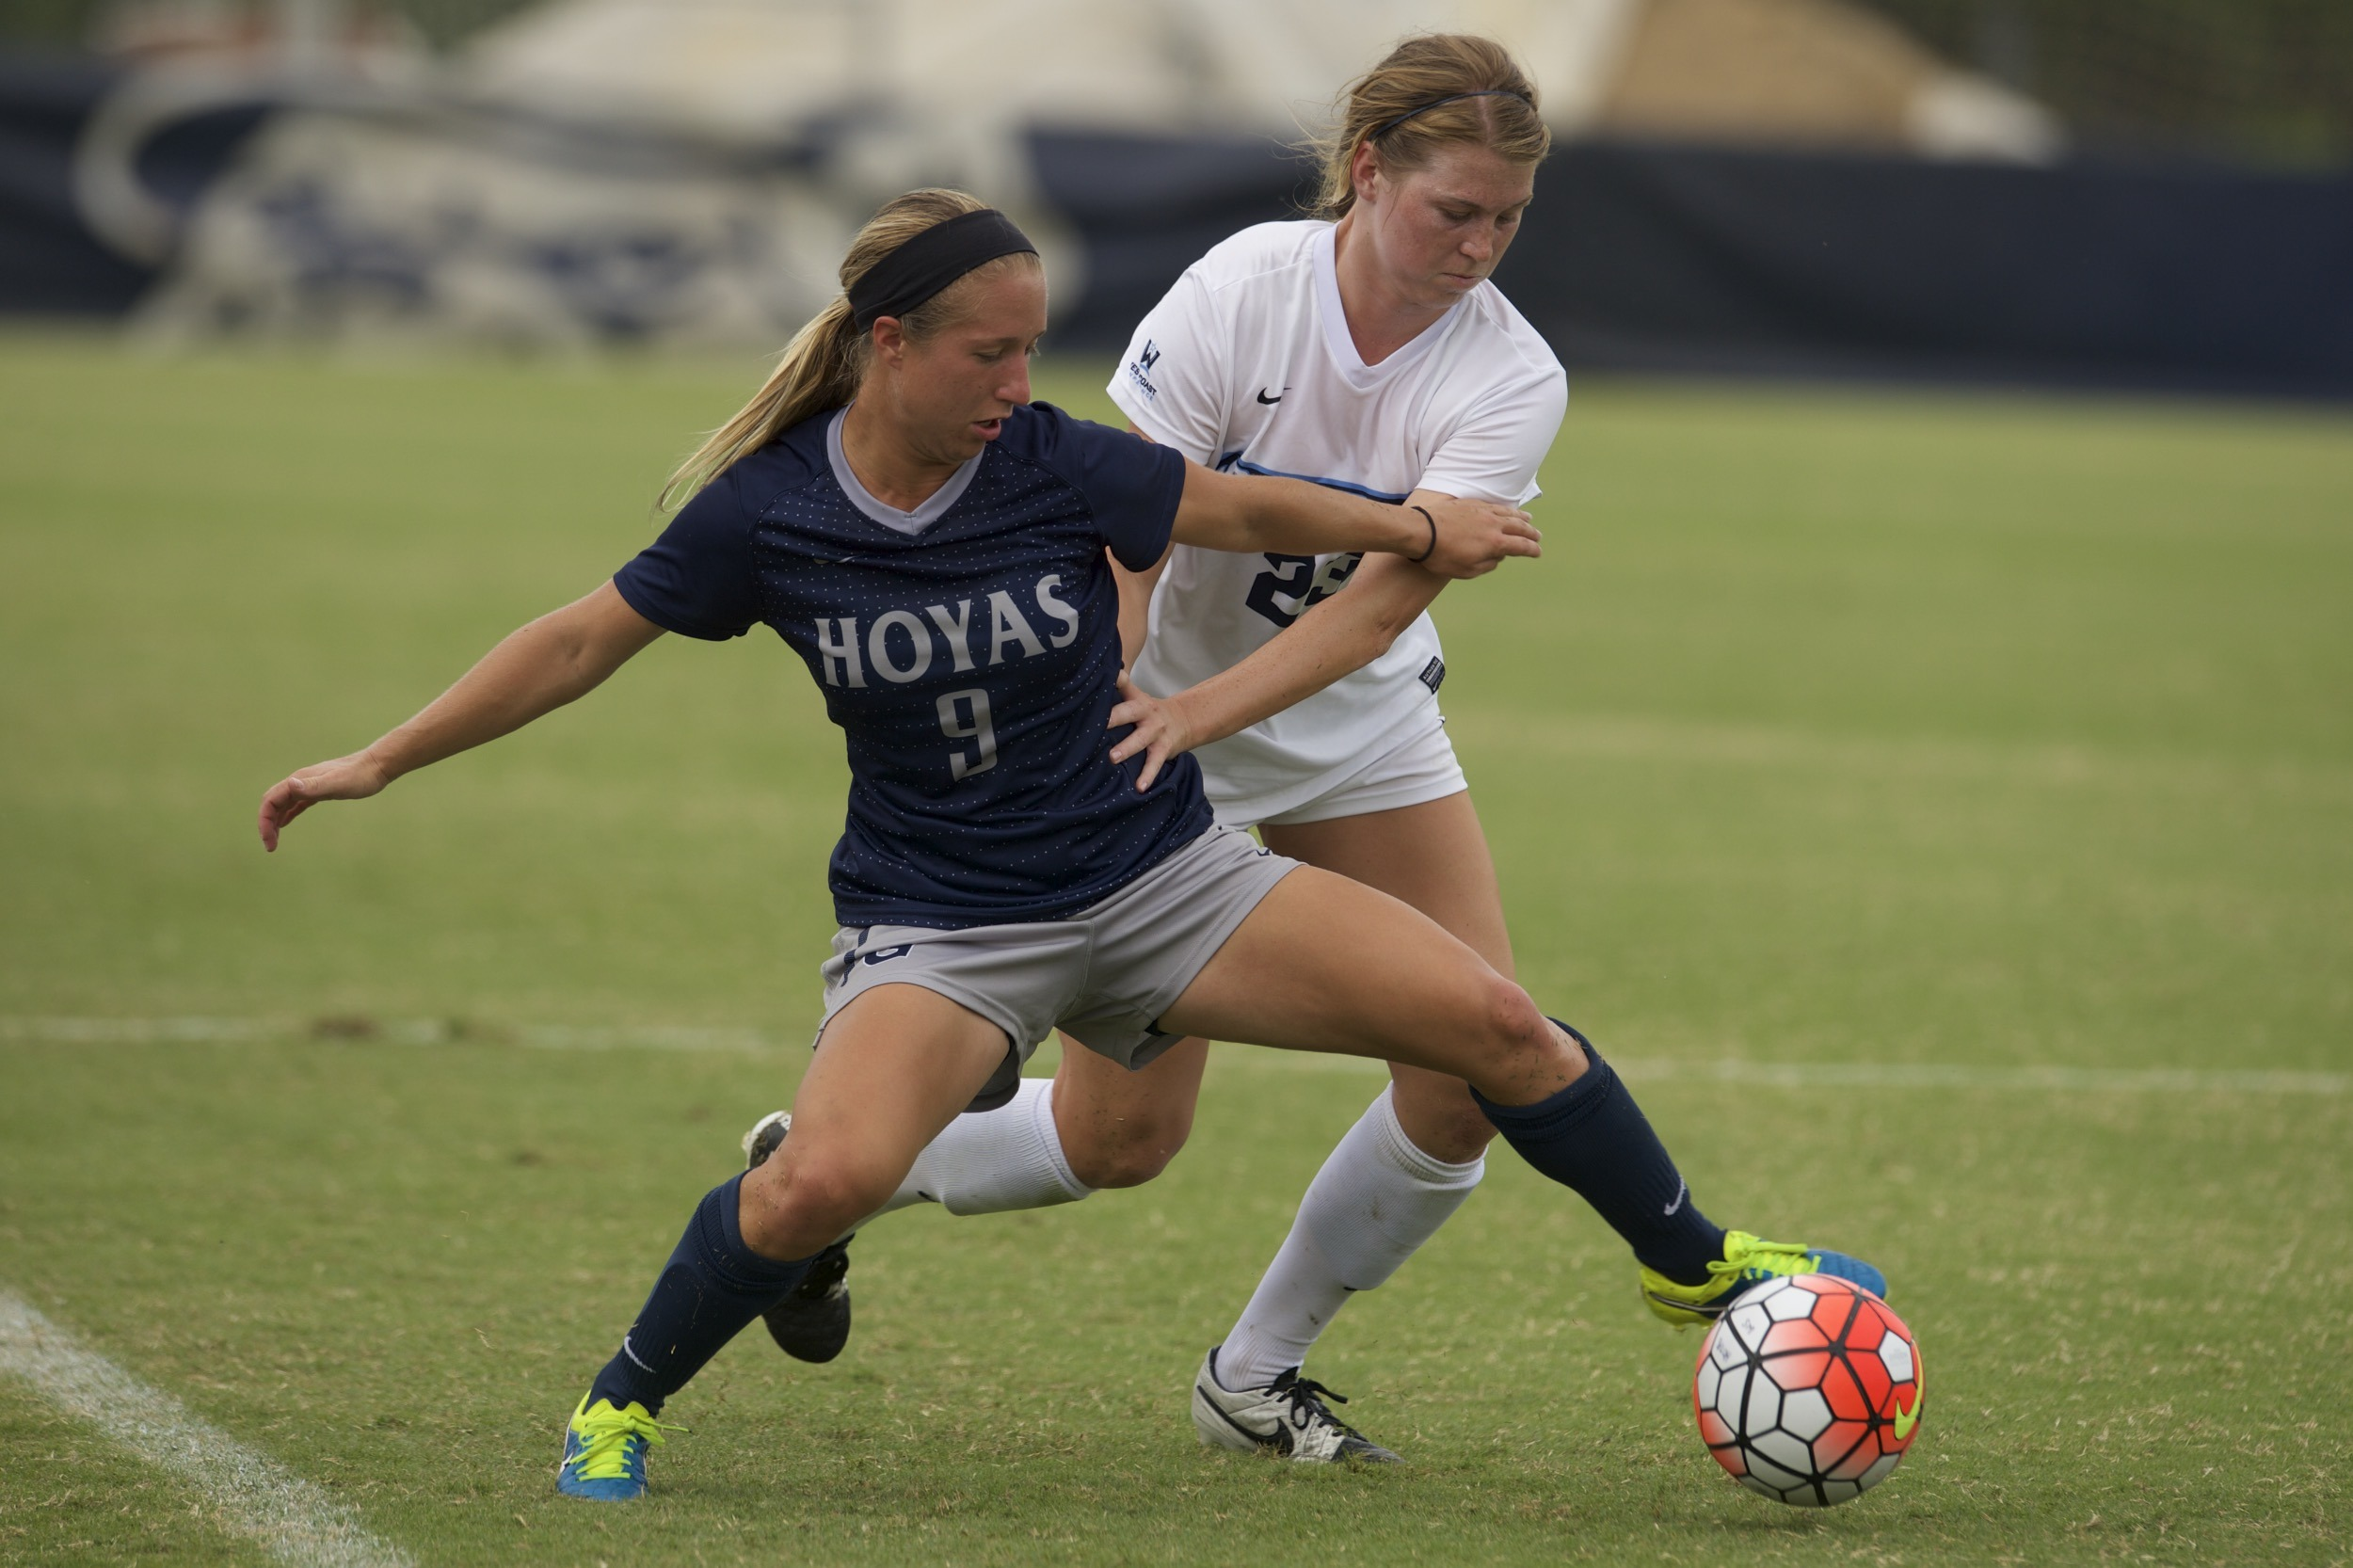 Georgetown University senior women's soccer player Crystal Thomas was selected to the BIG EAST Weekly Honor Roll on Monday.